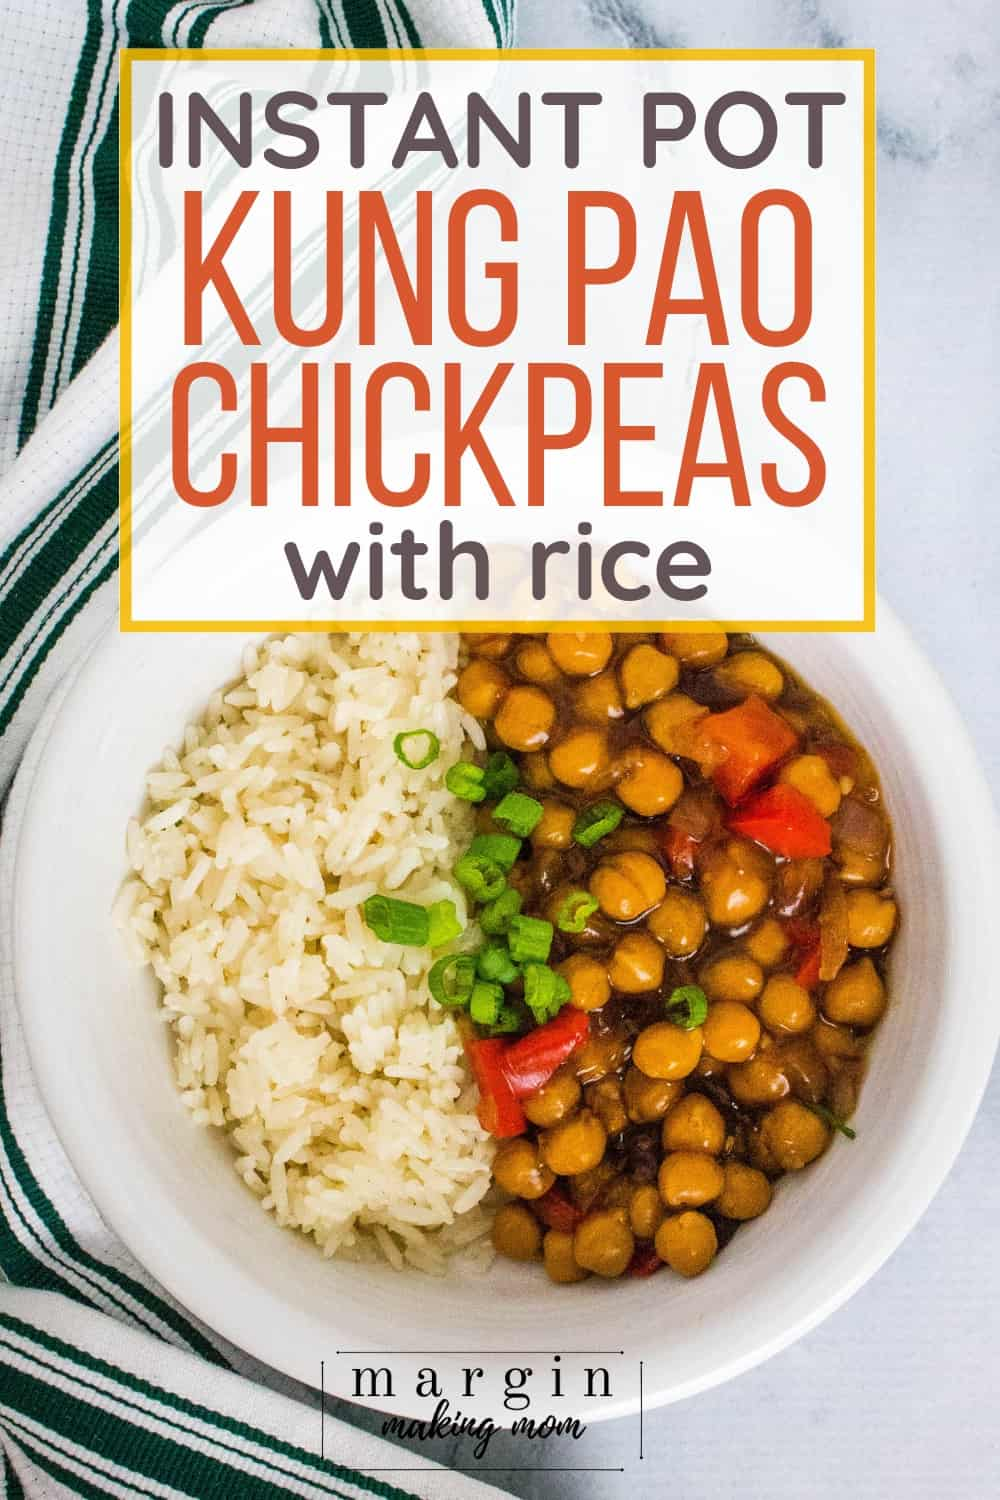 white bowl filled with white rice and kung pao chickpeas, garnished with green onions